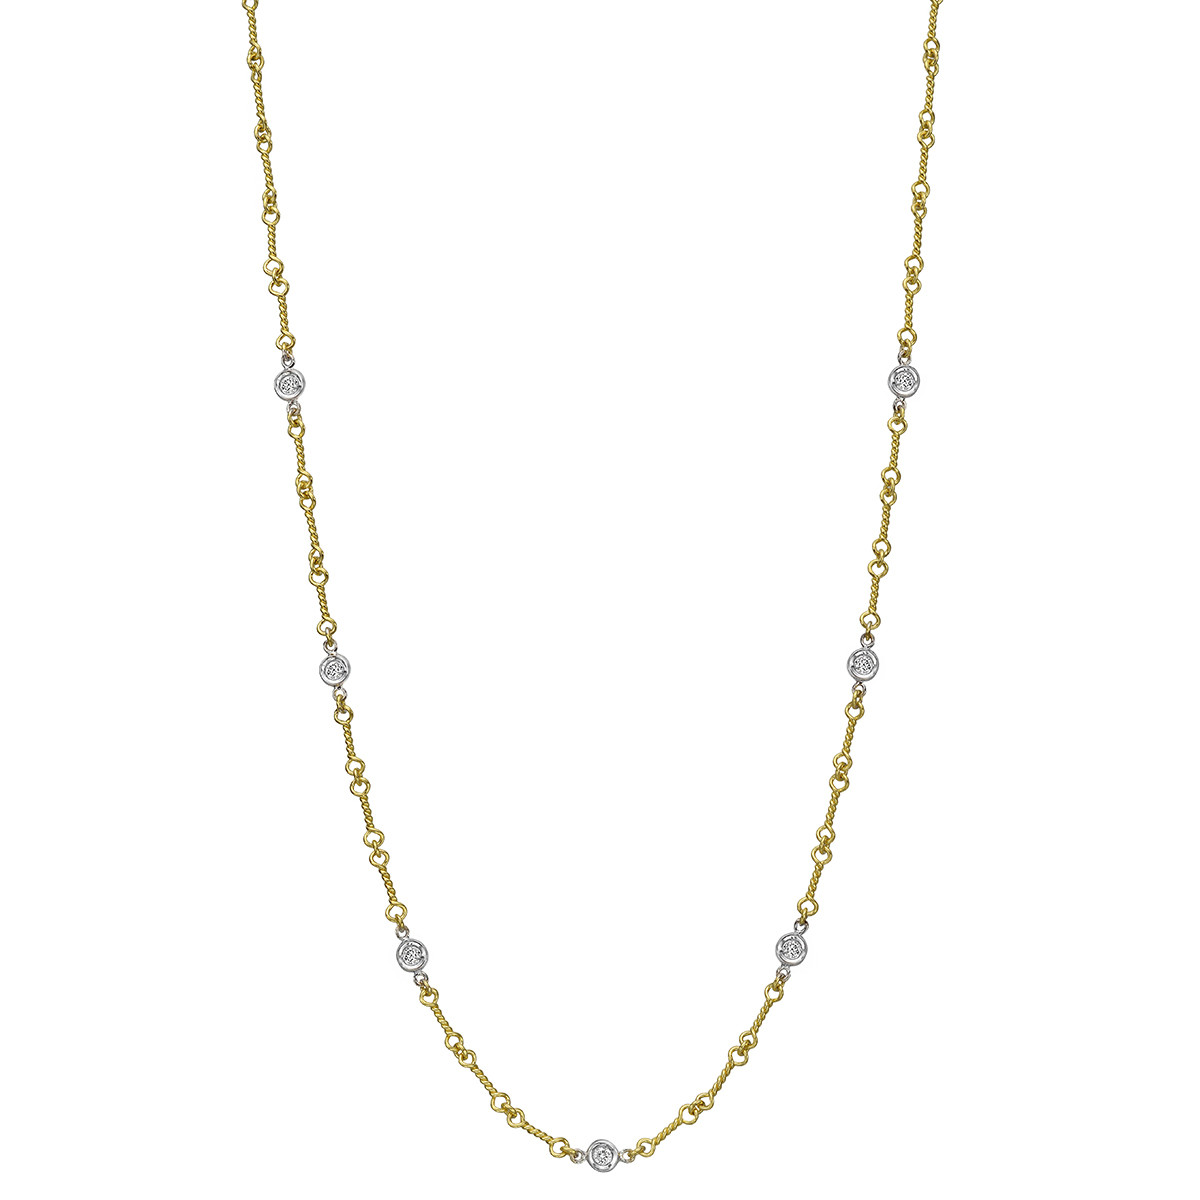 18k Gold & Diamond Dogbone Chain Necklace